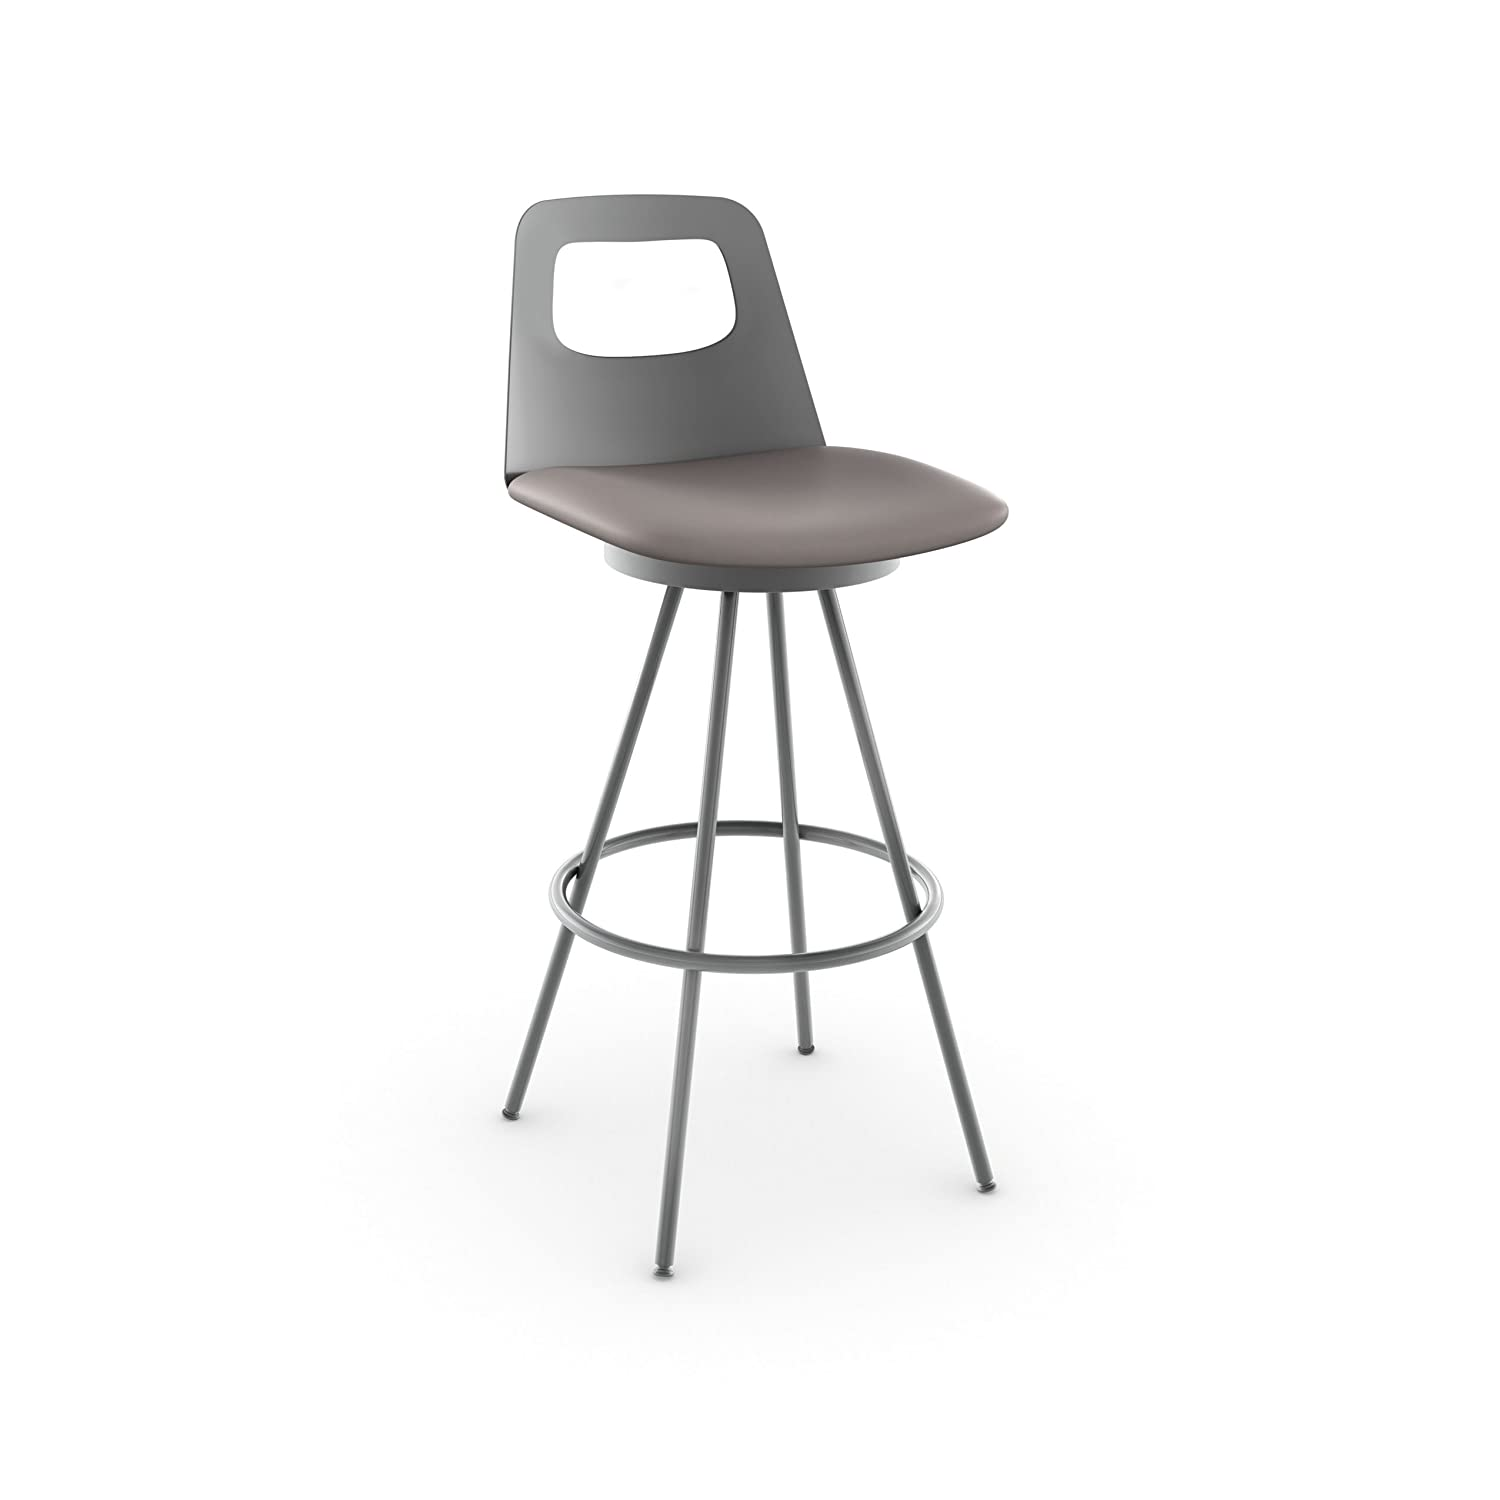 Amazon.com Amisco Ovo Swivel Metal Counter Stool with Backrest 26-Inch Magnetite/Pewter Kitchen u0026 Dining  sc 1 st  Amazon.com & Amazon.com: Amisco Ovo Swivel Metal Counter Stool with Backrest ... islam-shia.org